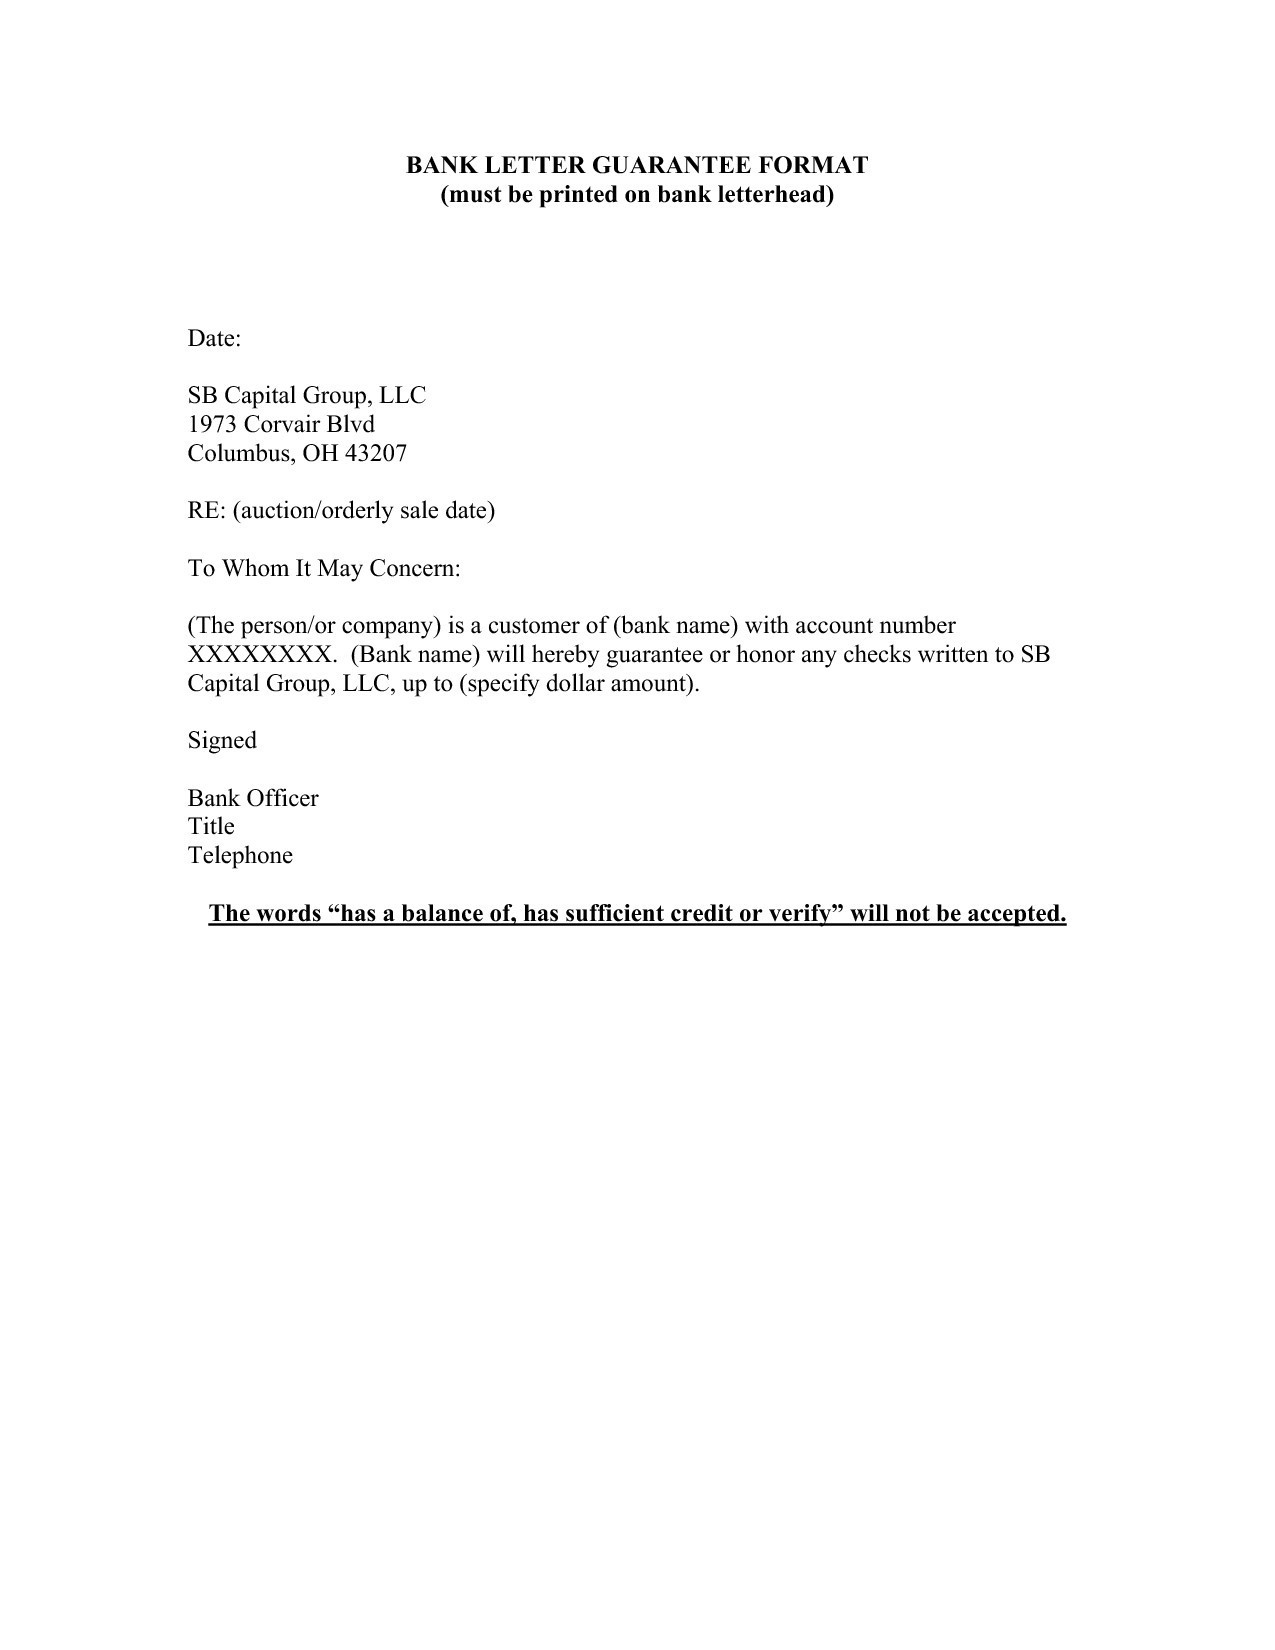 Personal Loan Letter Template - Letter format for Loan Application Save Letter format Bank New